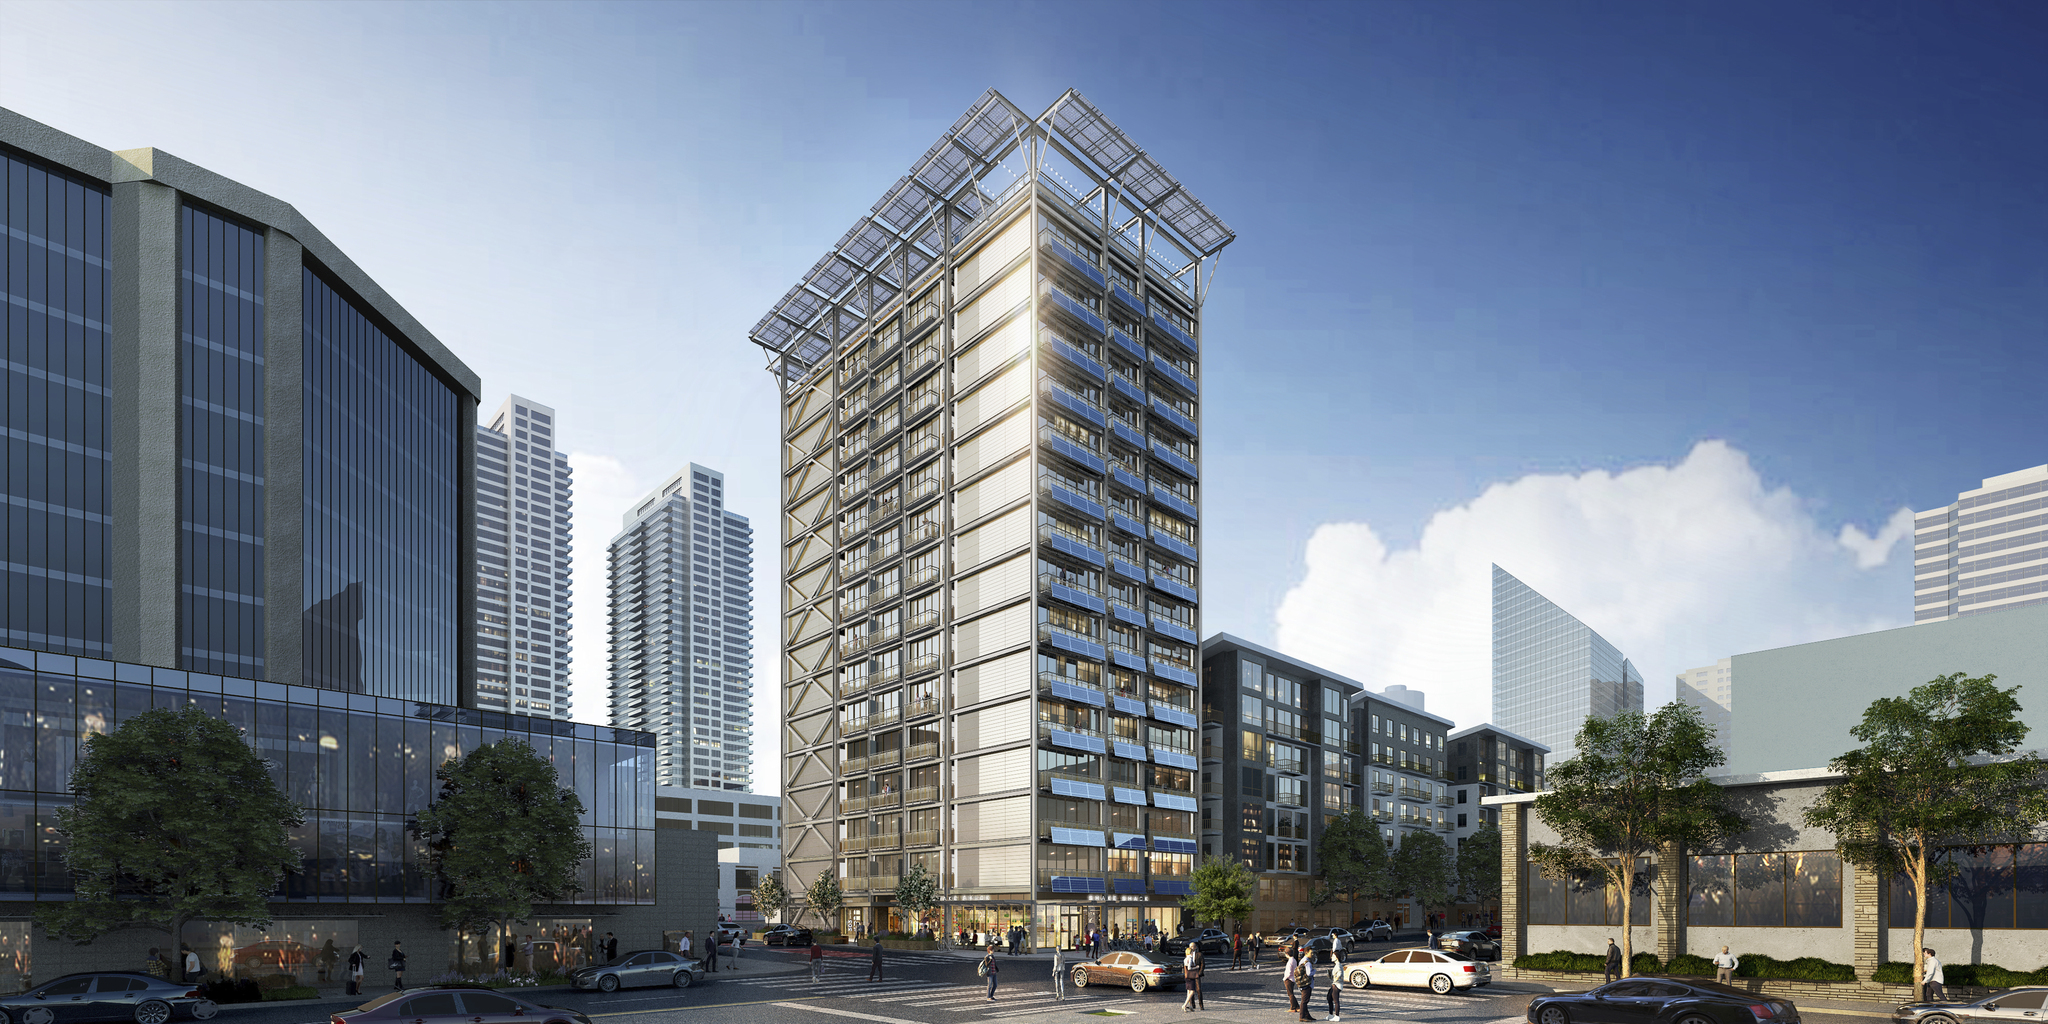 Seattle tech co. breaks ground on world's first 'net zero energy' high-rise apartment building